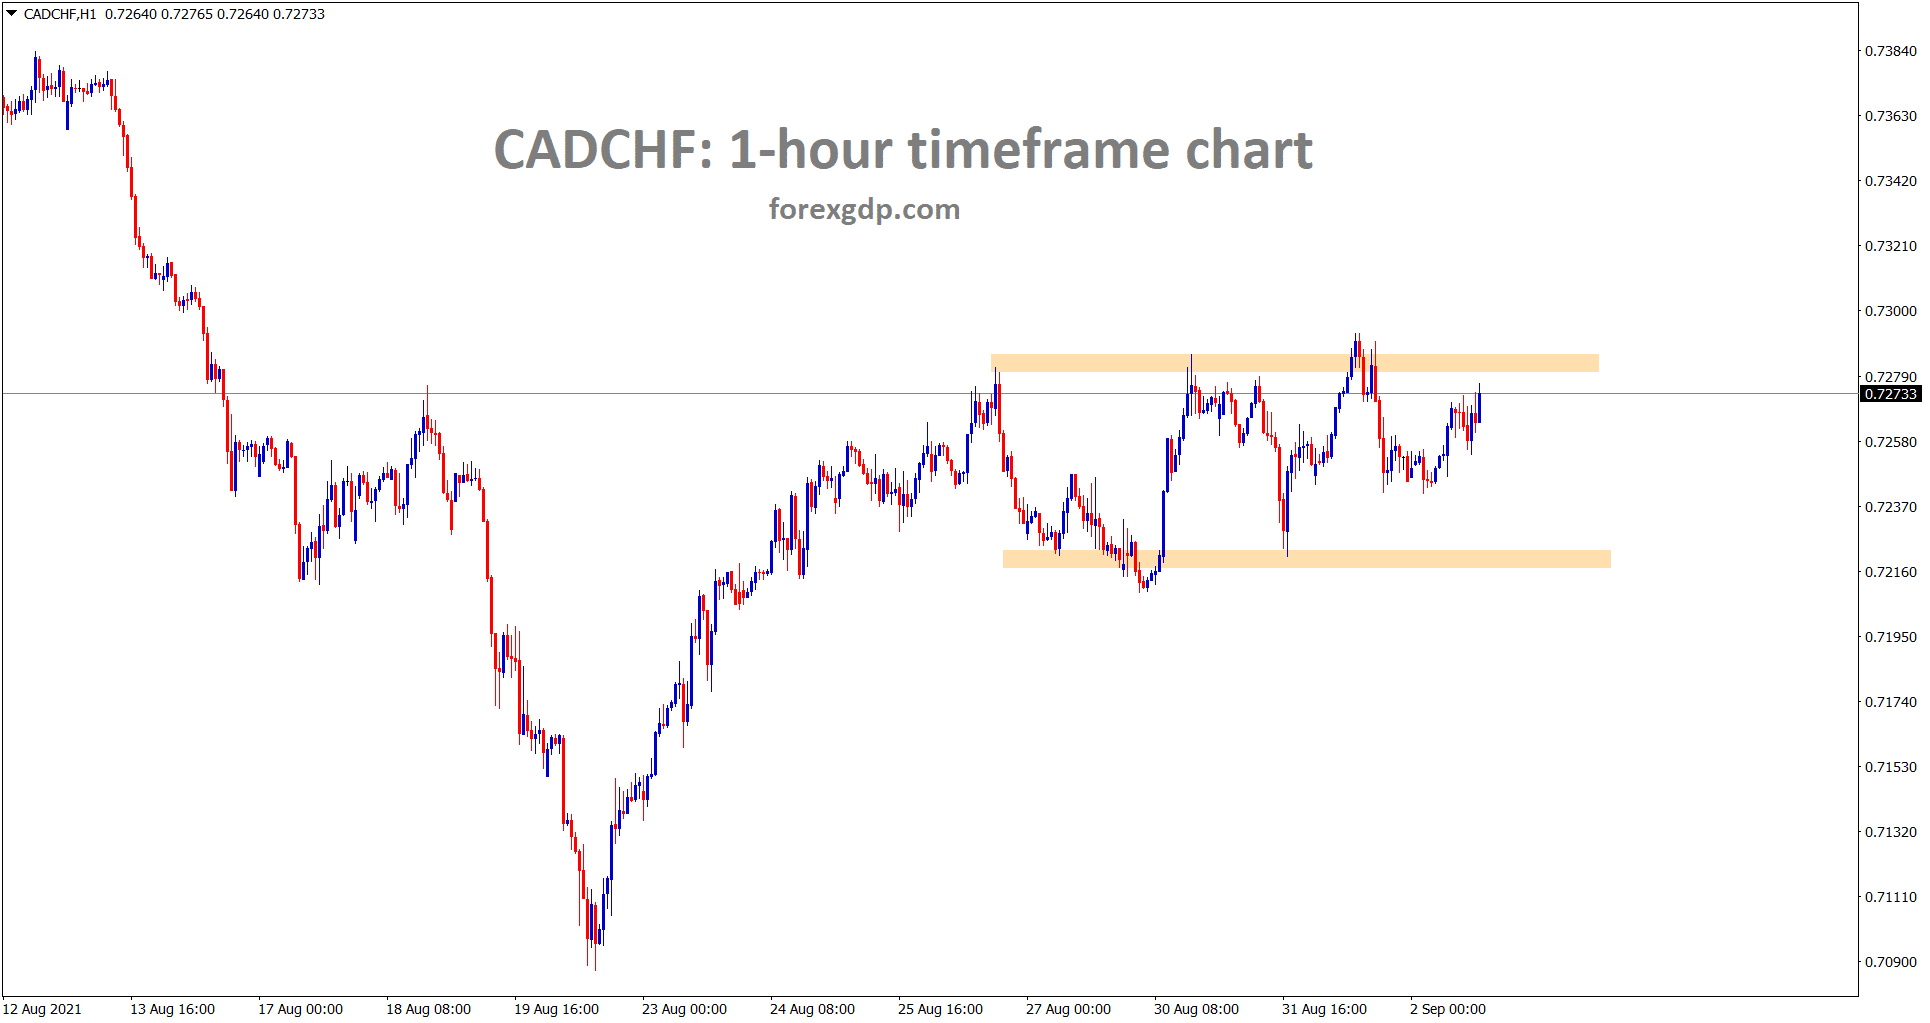 CADCHF is moving up and down between the support and resistance areas in the one hour timeframe